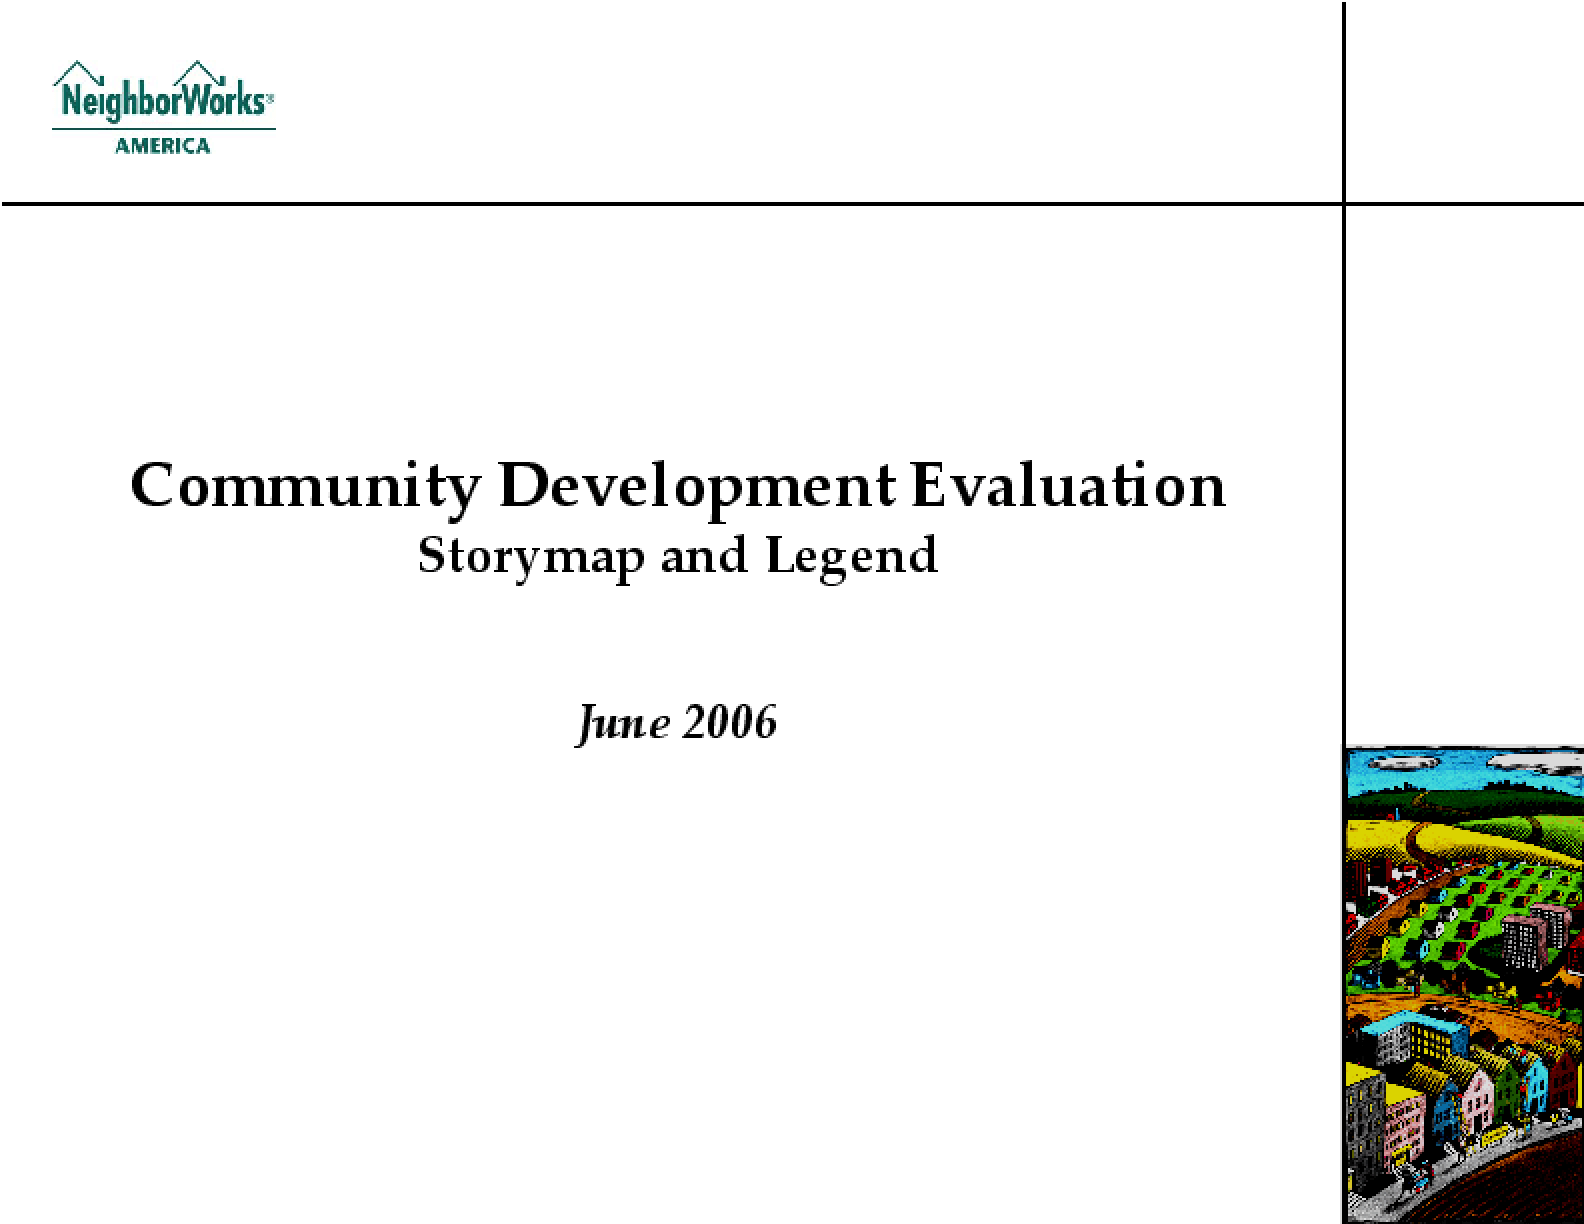 Community Development Evaluation Storymap and Legend